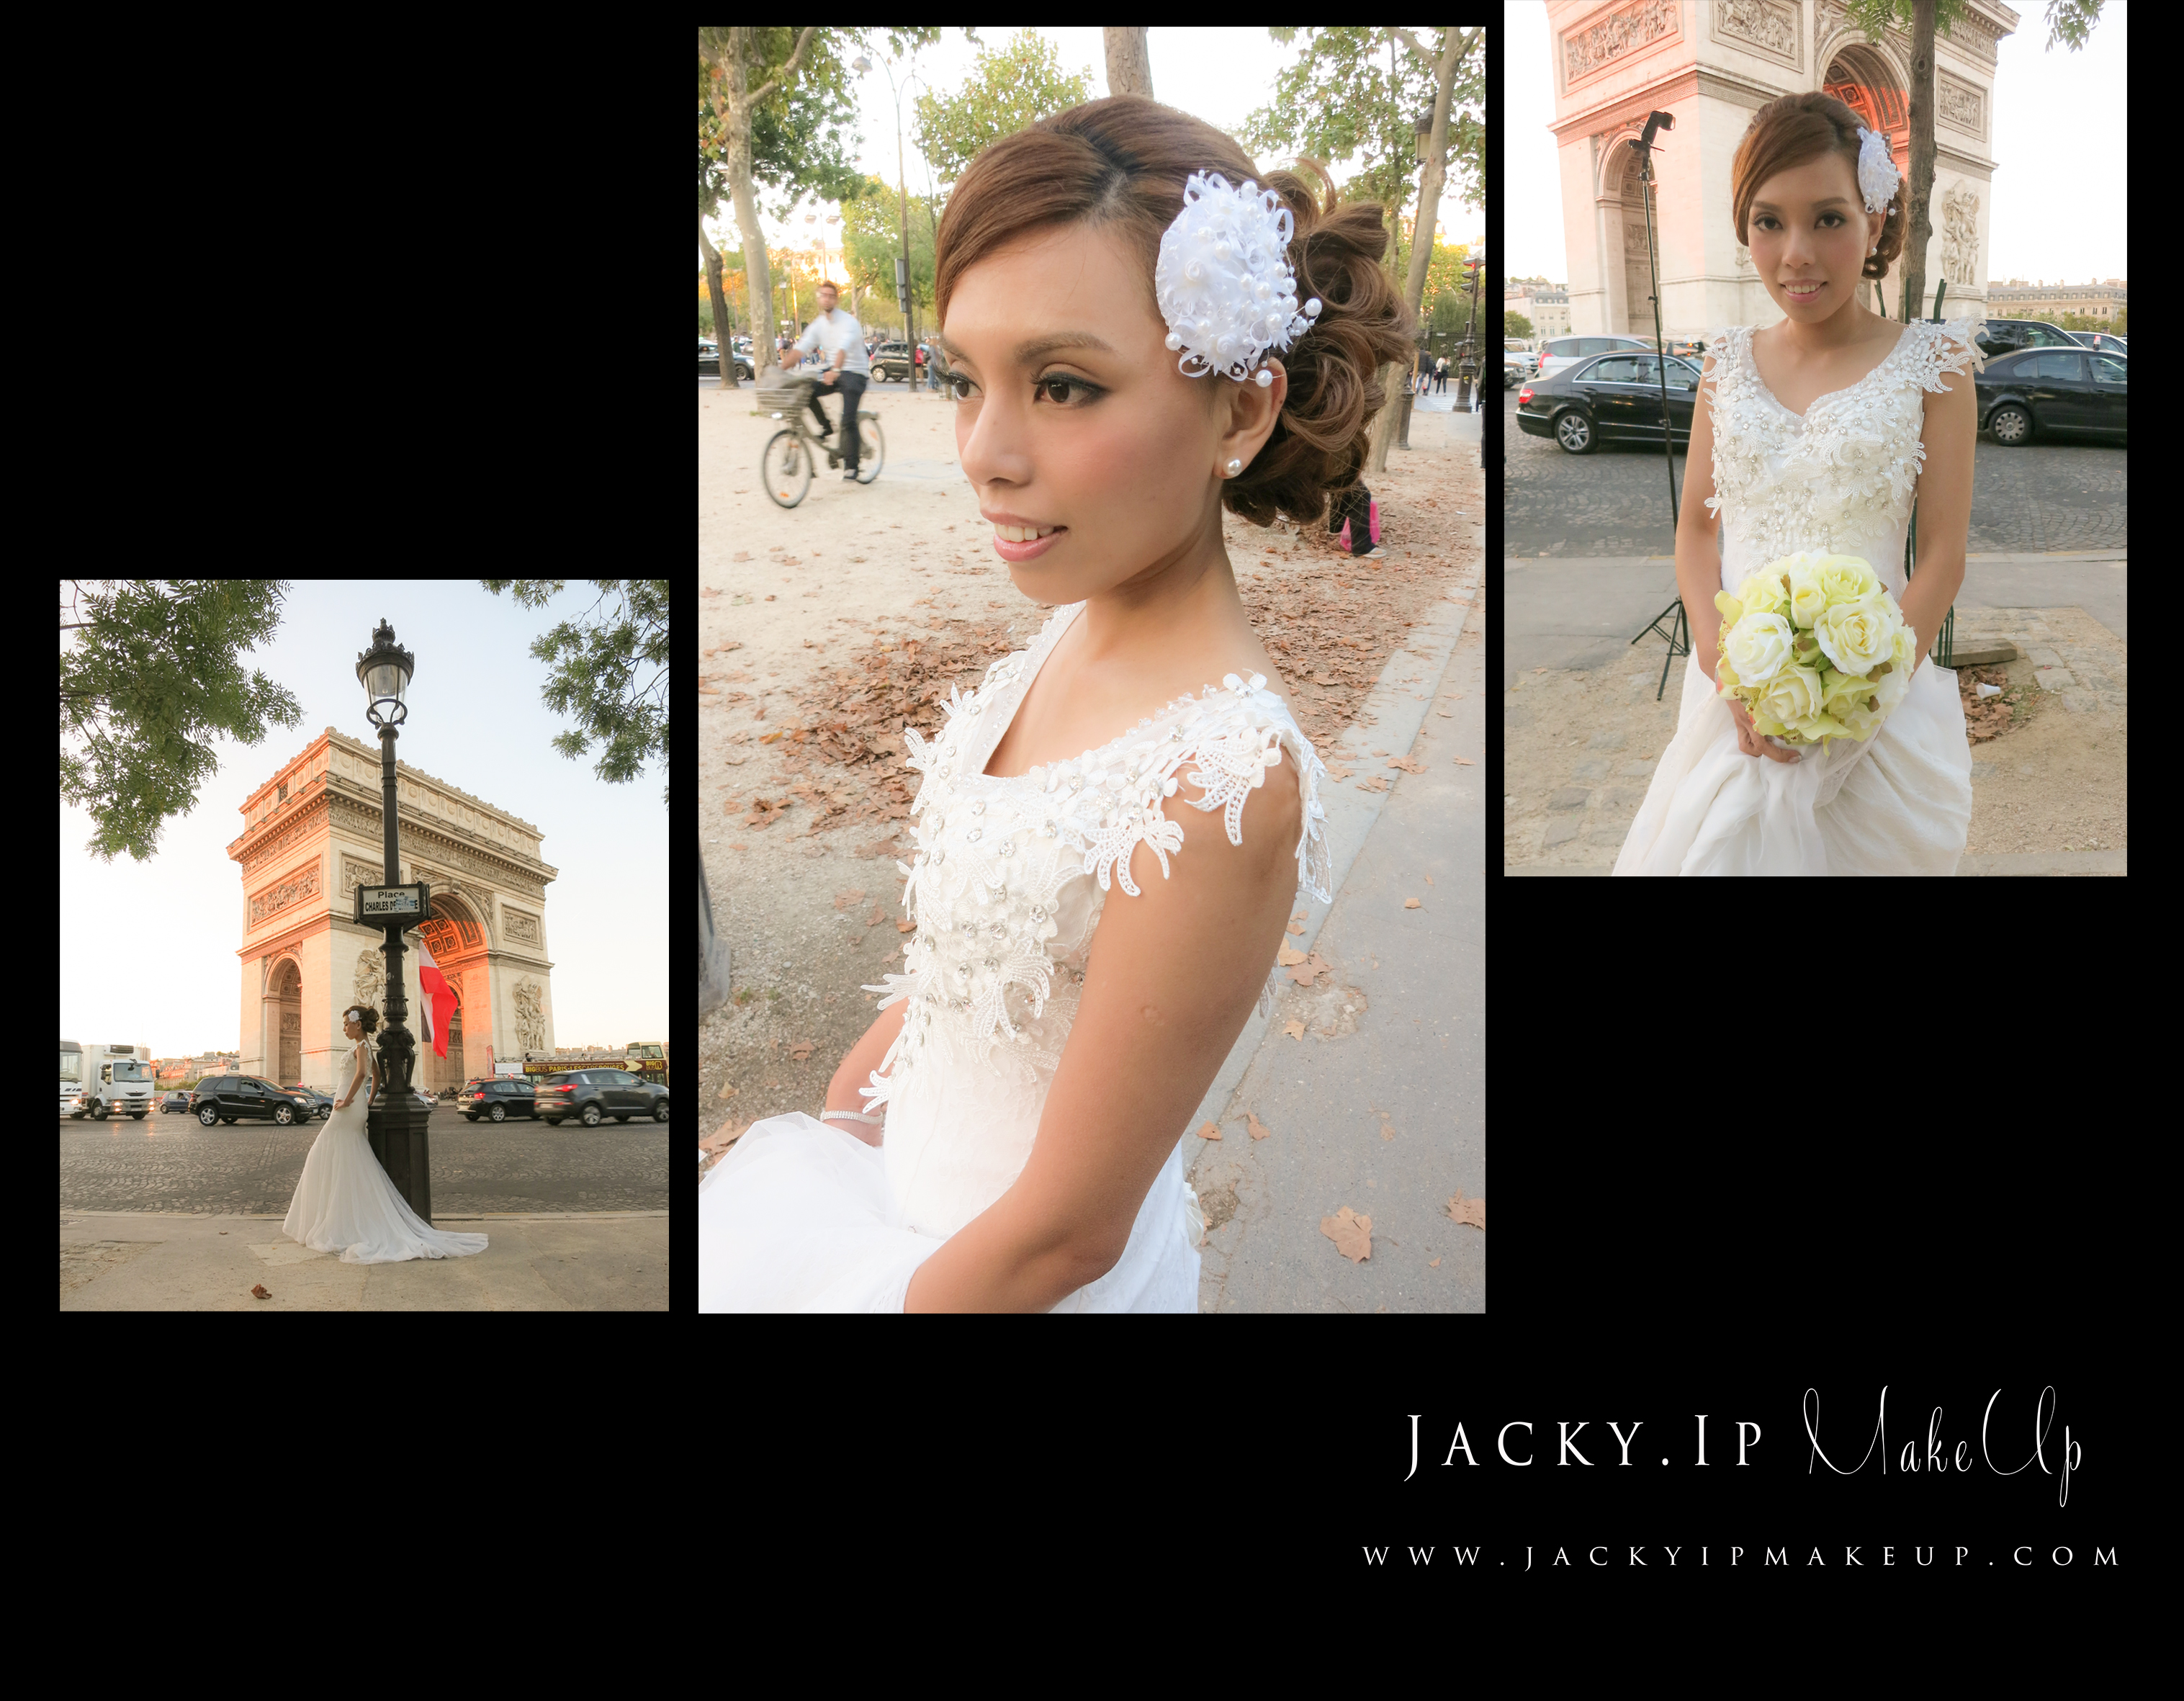 MakeUp & Hair By Jacky.Ip